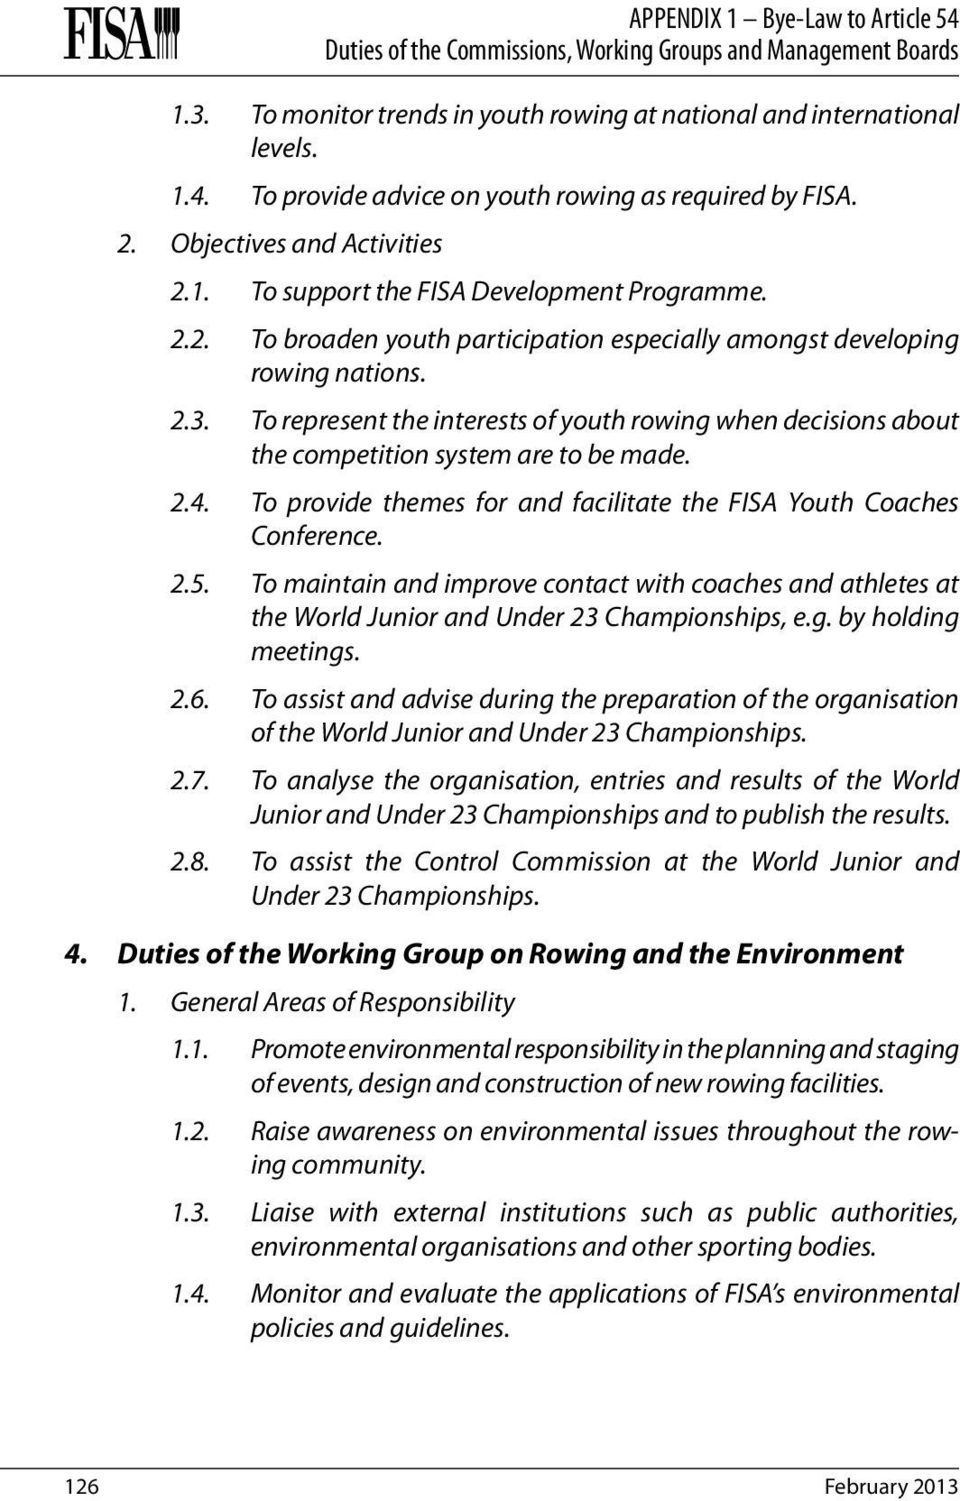 To represent the interests of youth rowing when decisions about the competition system are to be made. 2.4. To provide themes for and facilitate the FISA Youth Coaches Conference. 2.5.